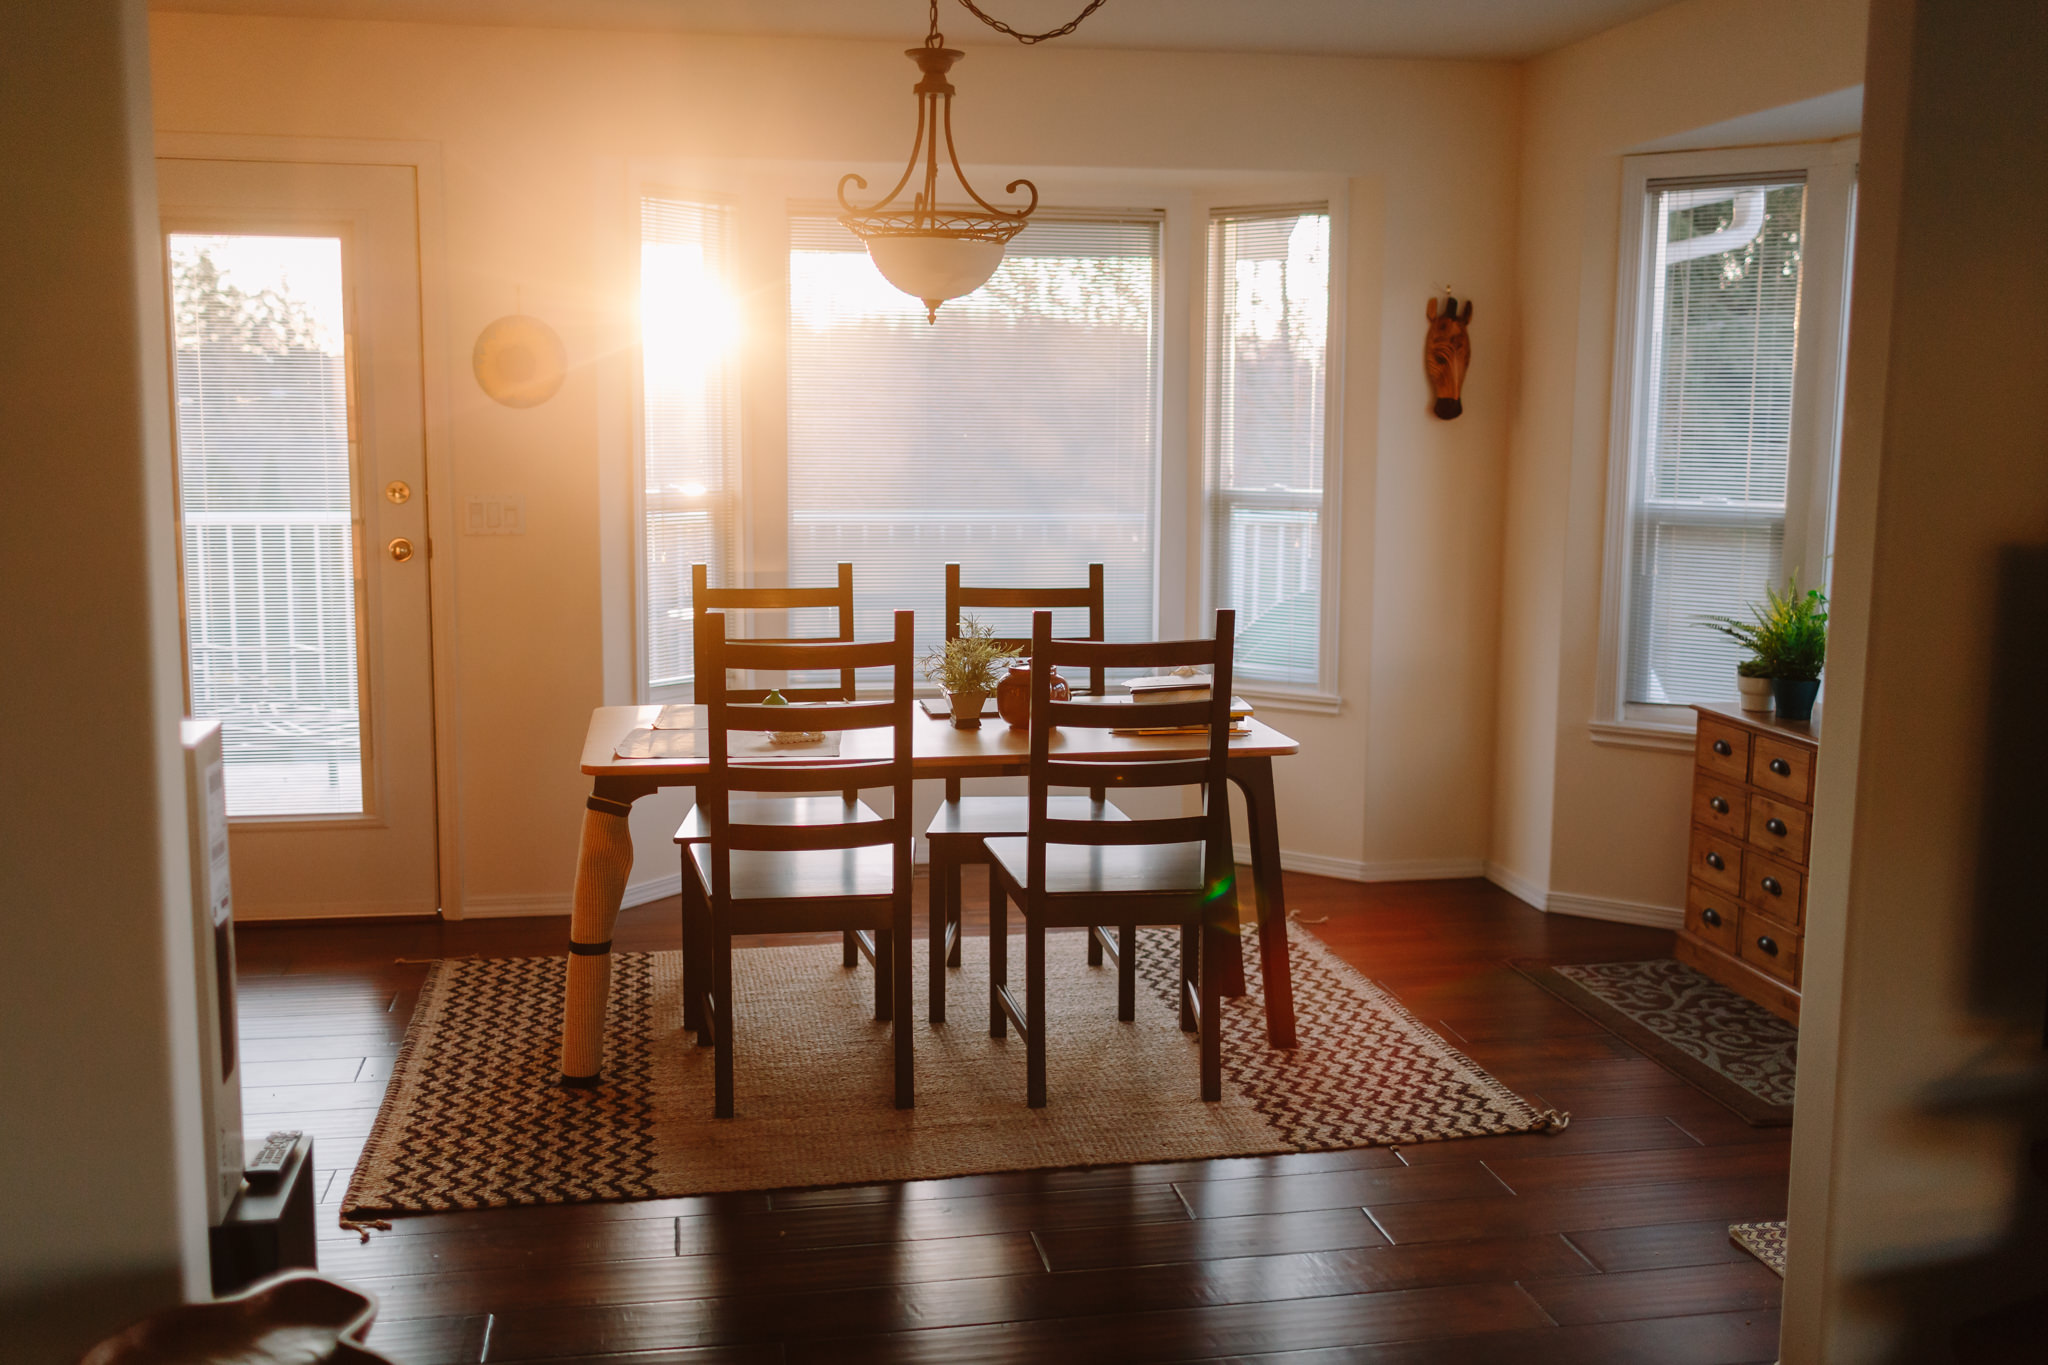 Beautiful evening light in dining room